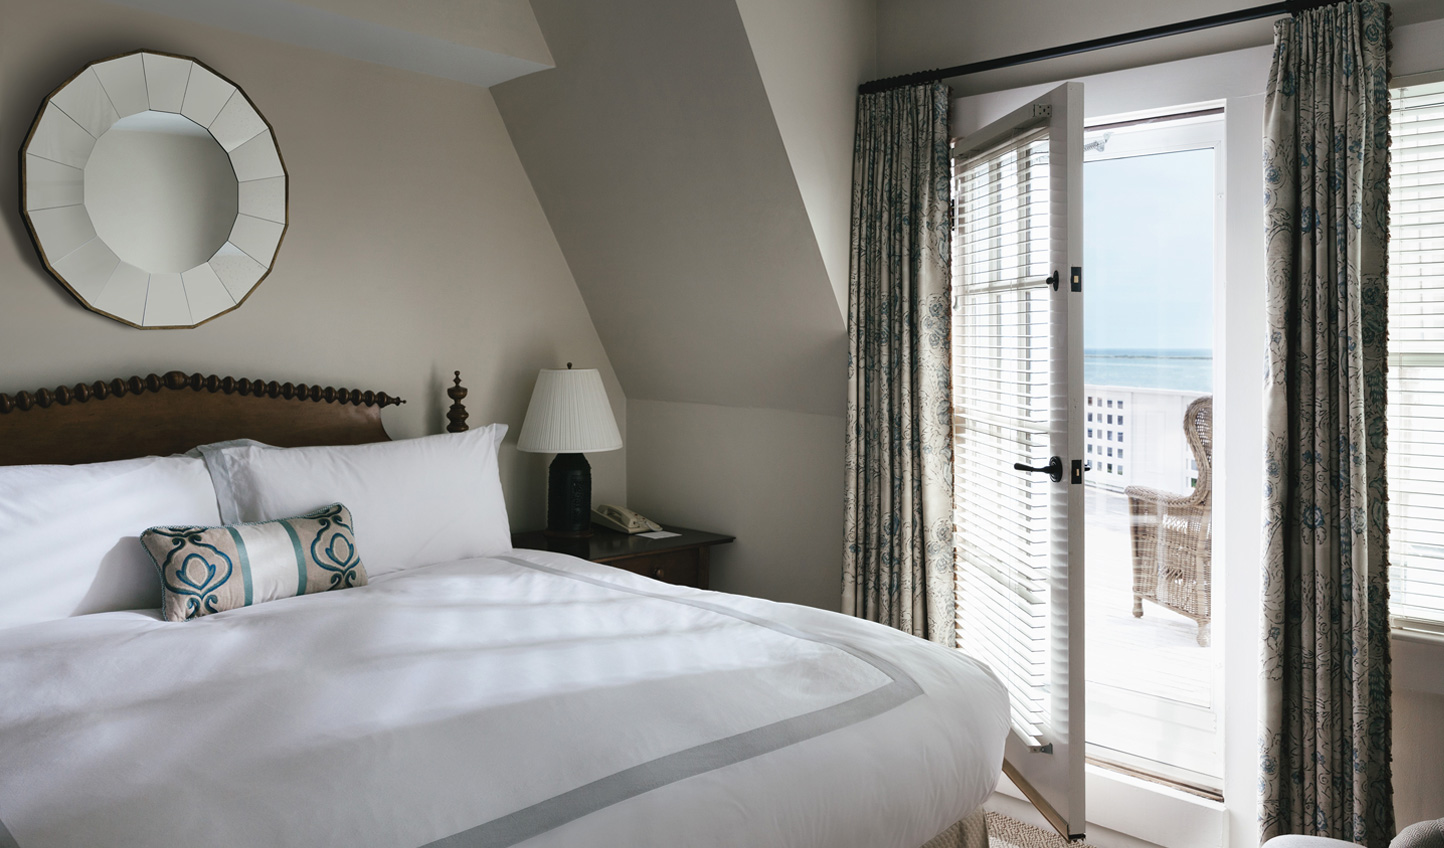 Wake up to the sound of the ocean waves lapping up against the shore